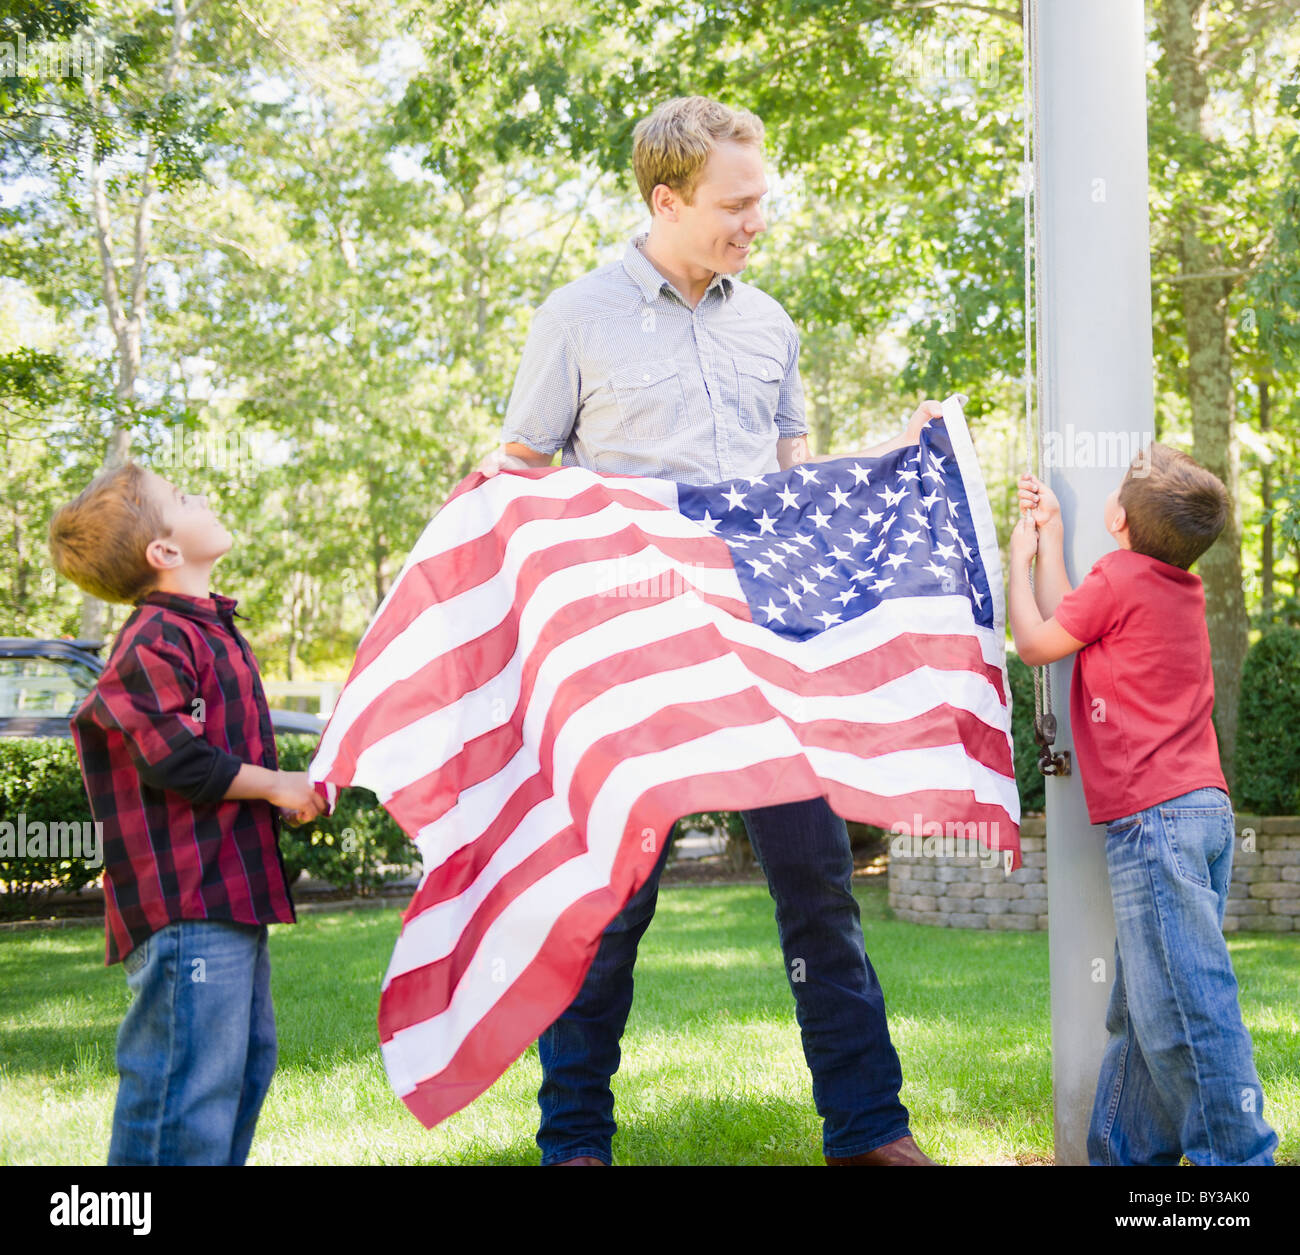 USA, New York, Flanders, Father with two boys (4-5, 8-9) hanging American flag on pole - Stock Image